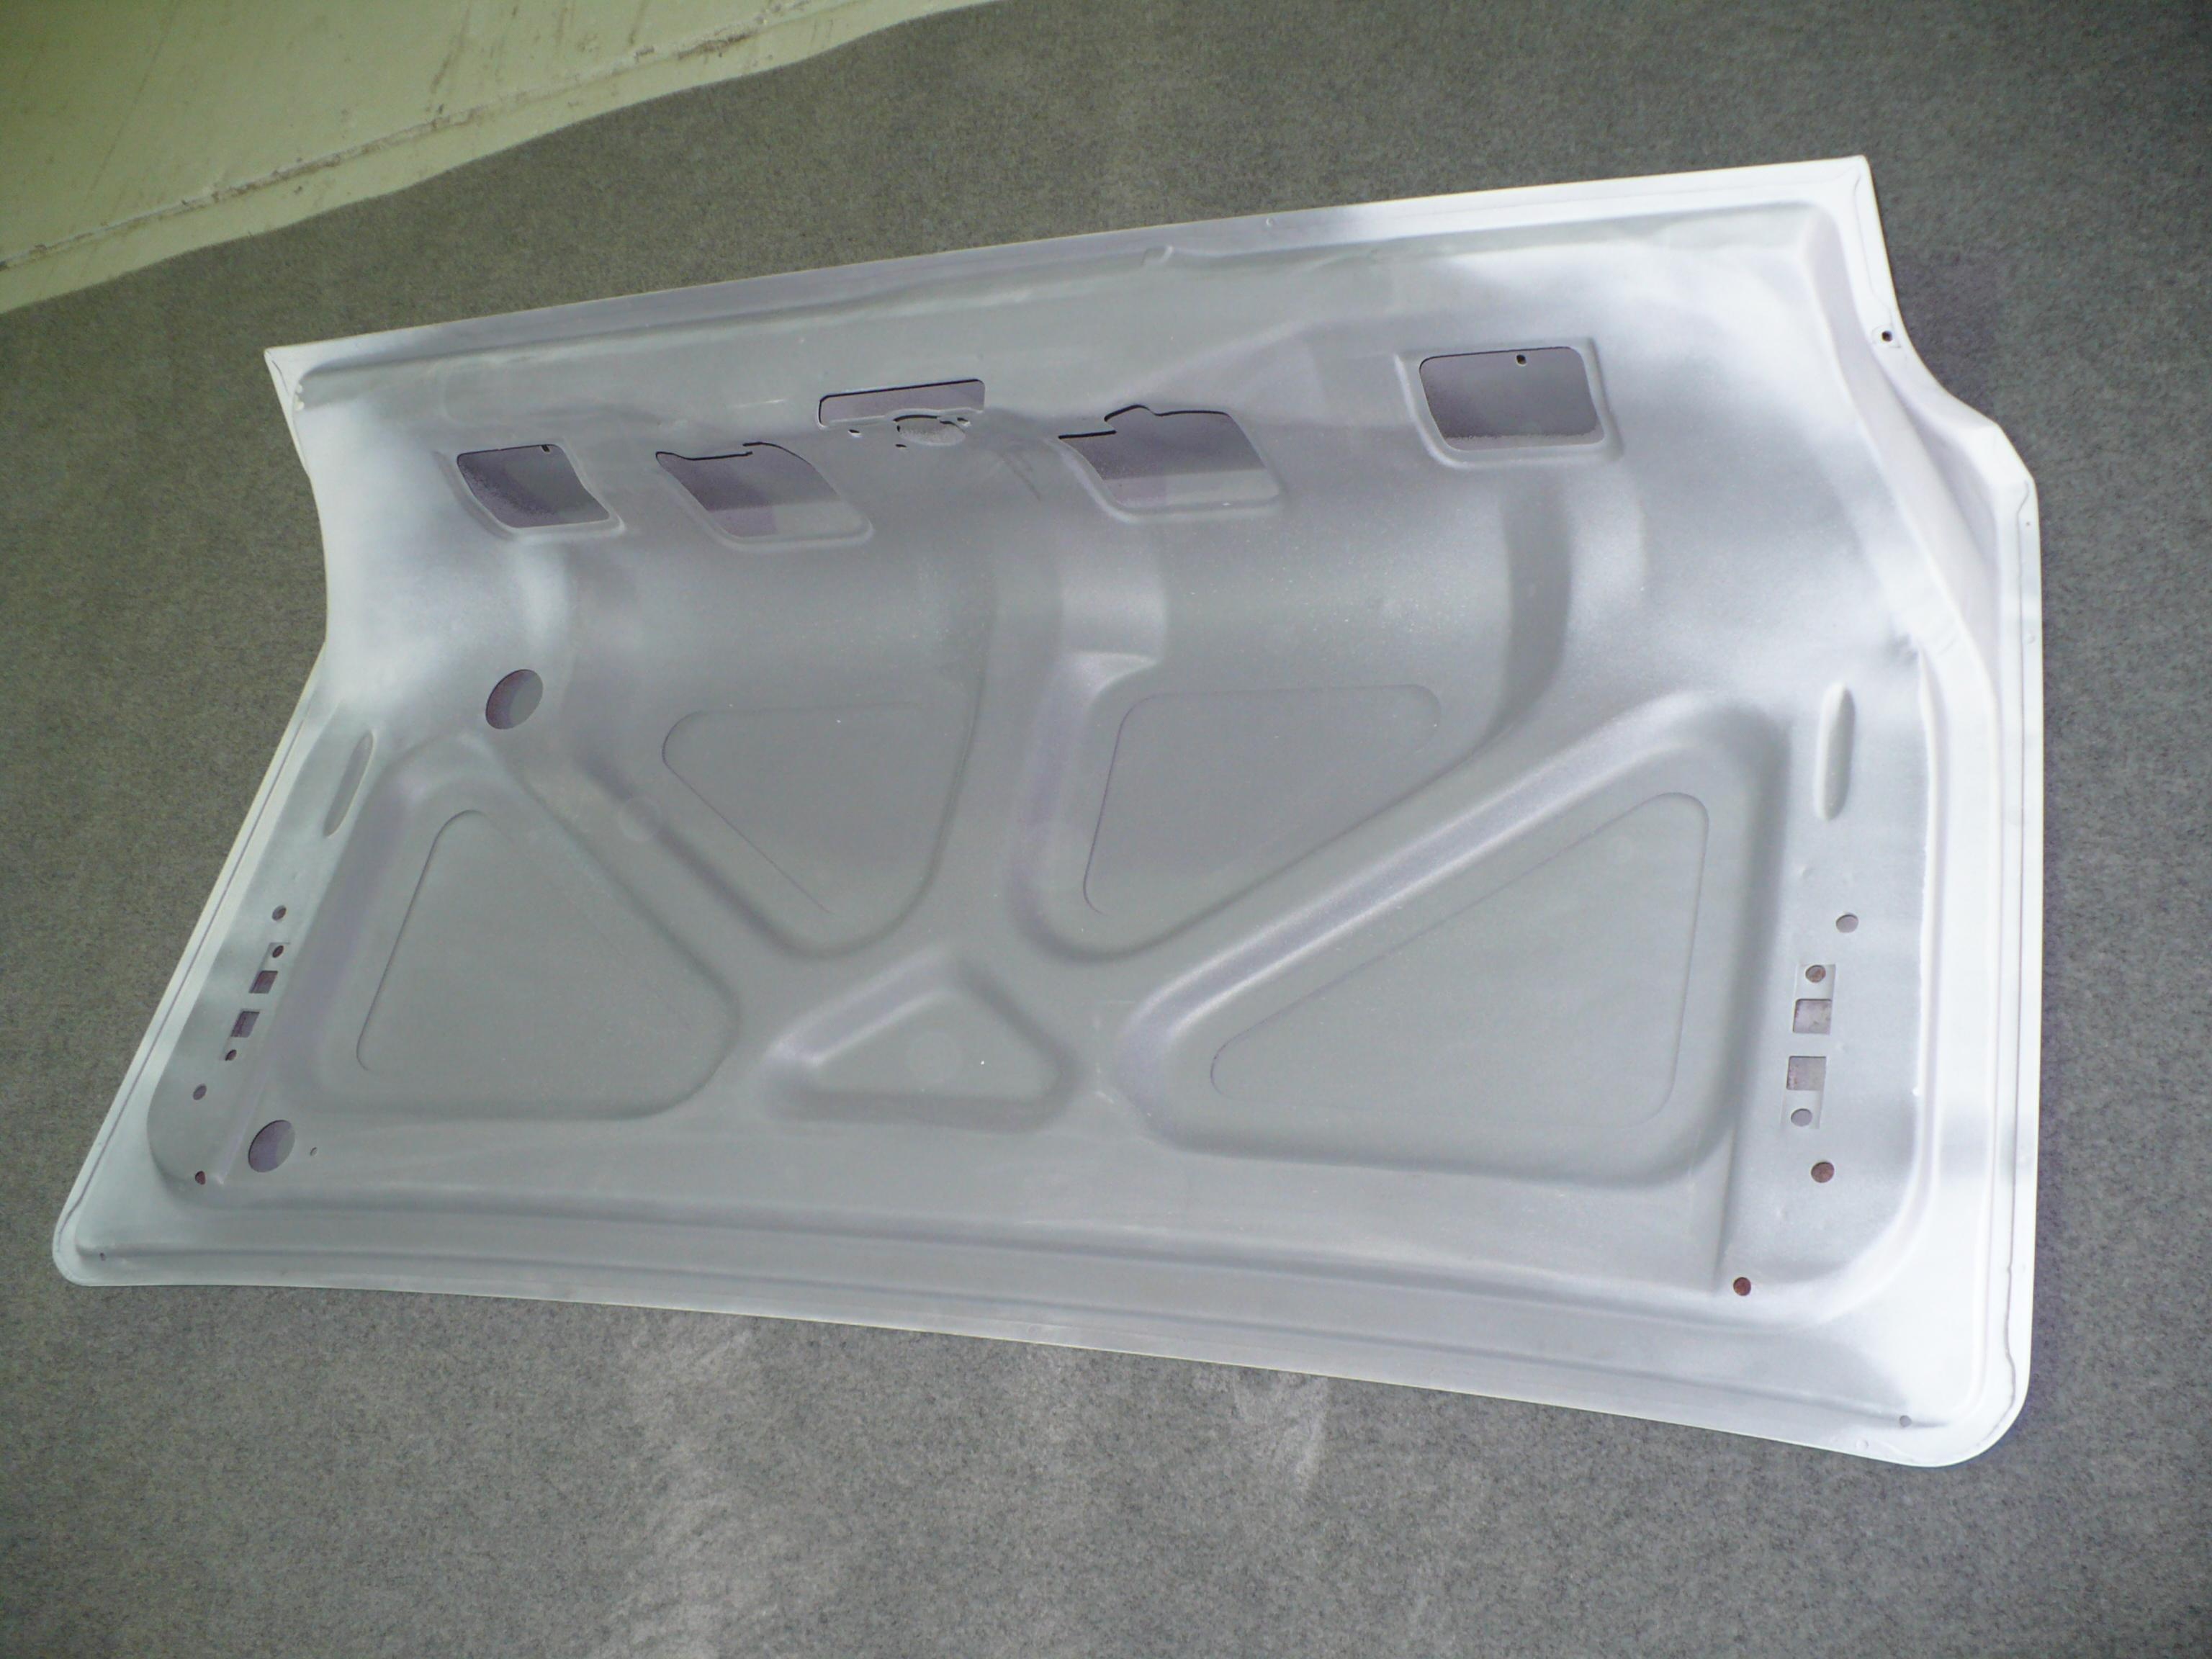 XR XT Boot Lid 3. We will ship anywhere; just send us a message,